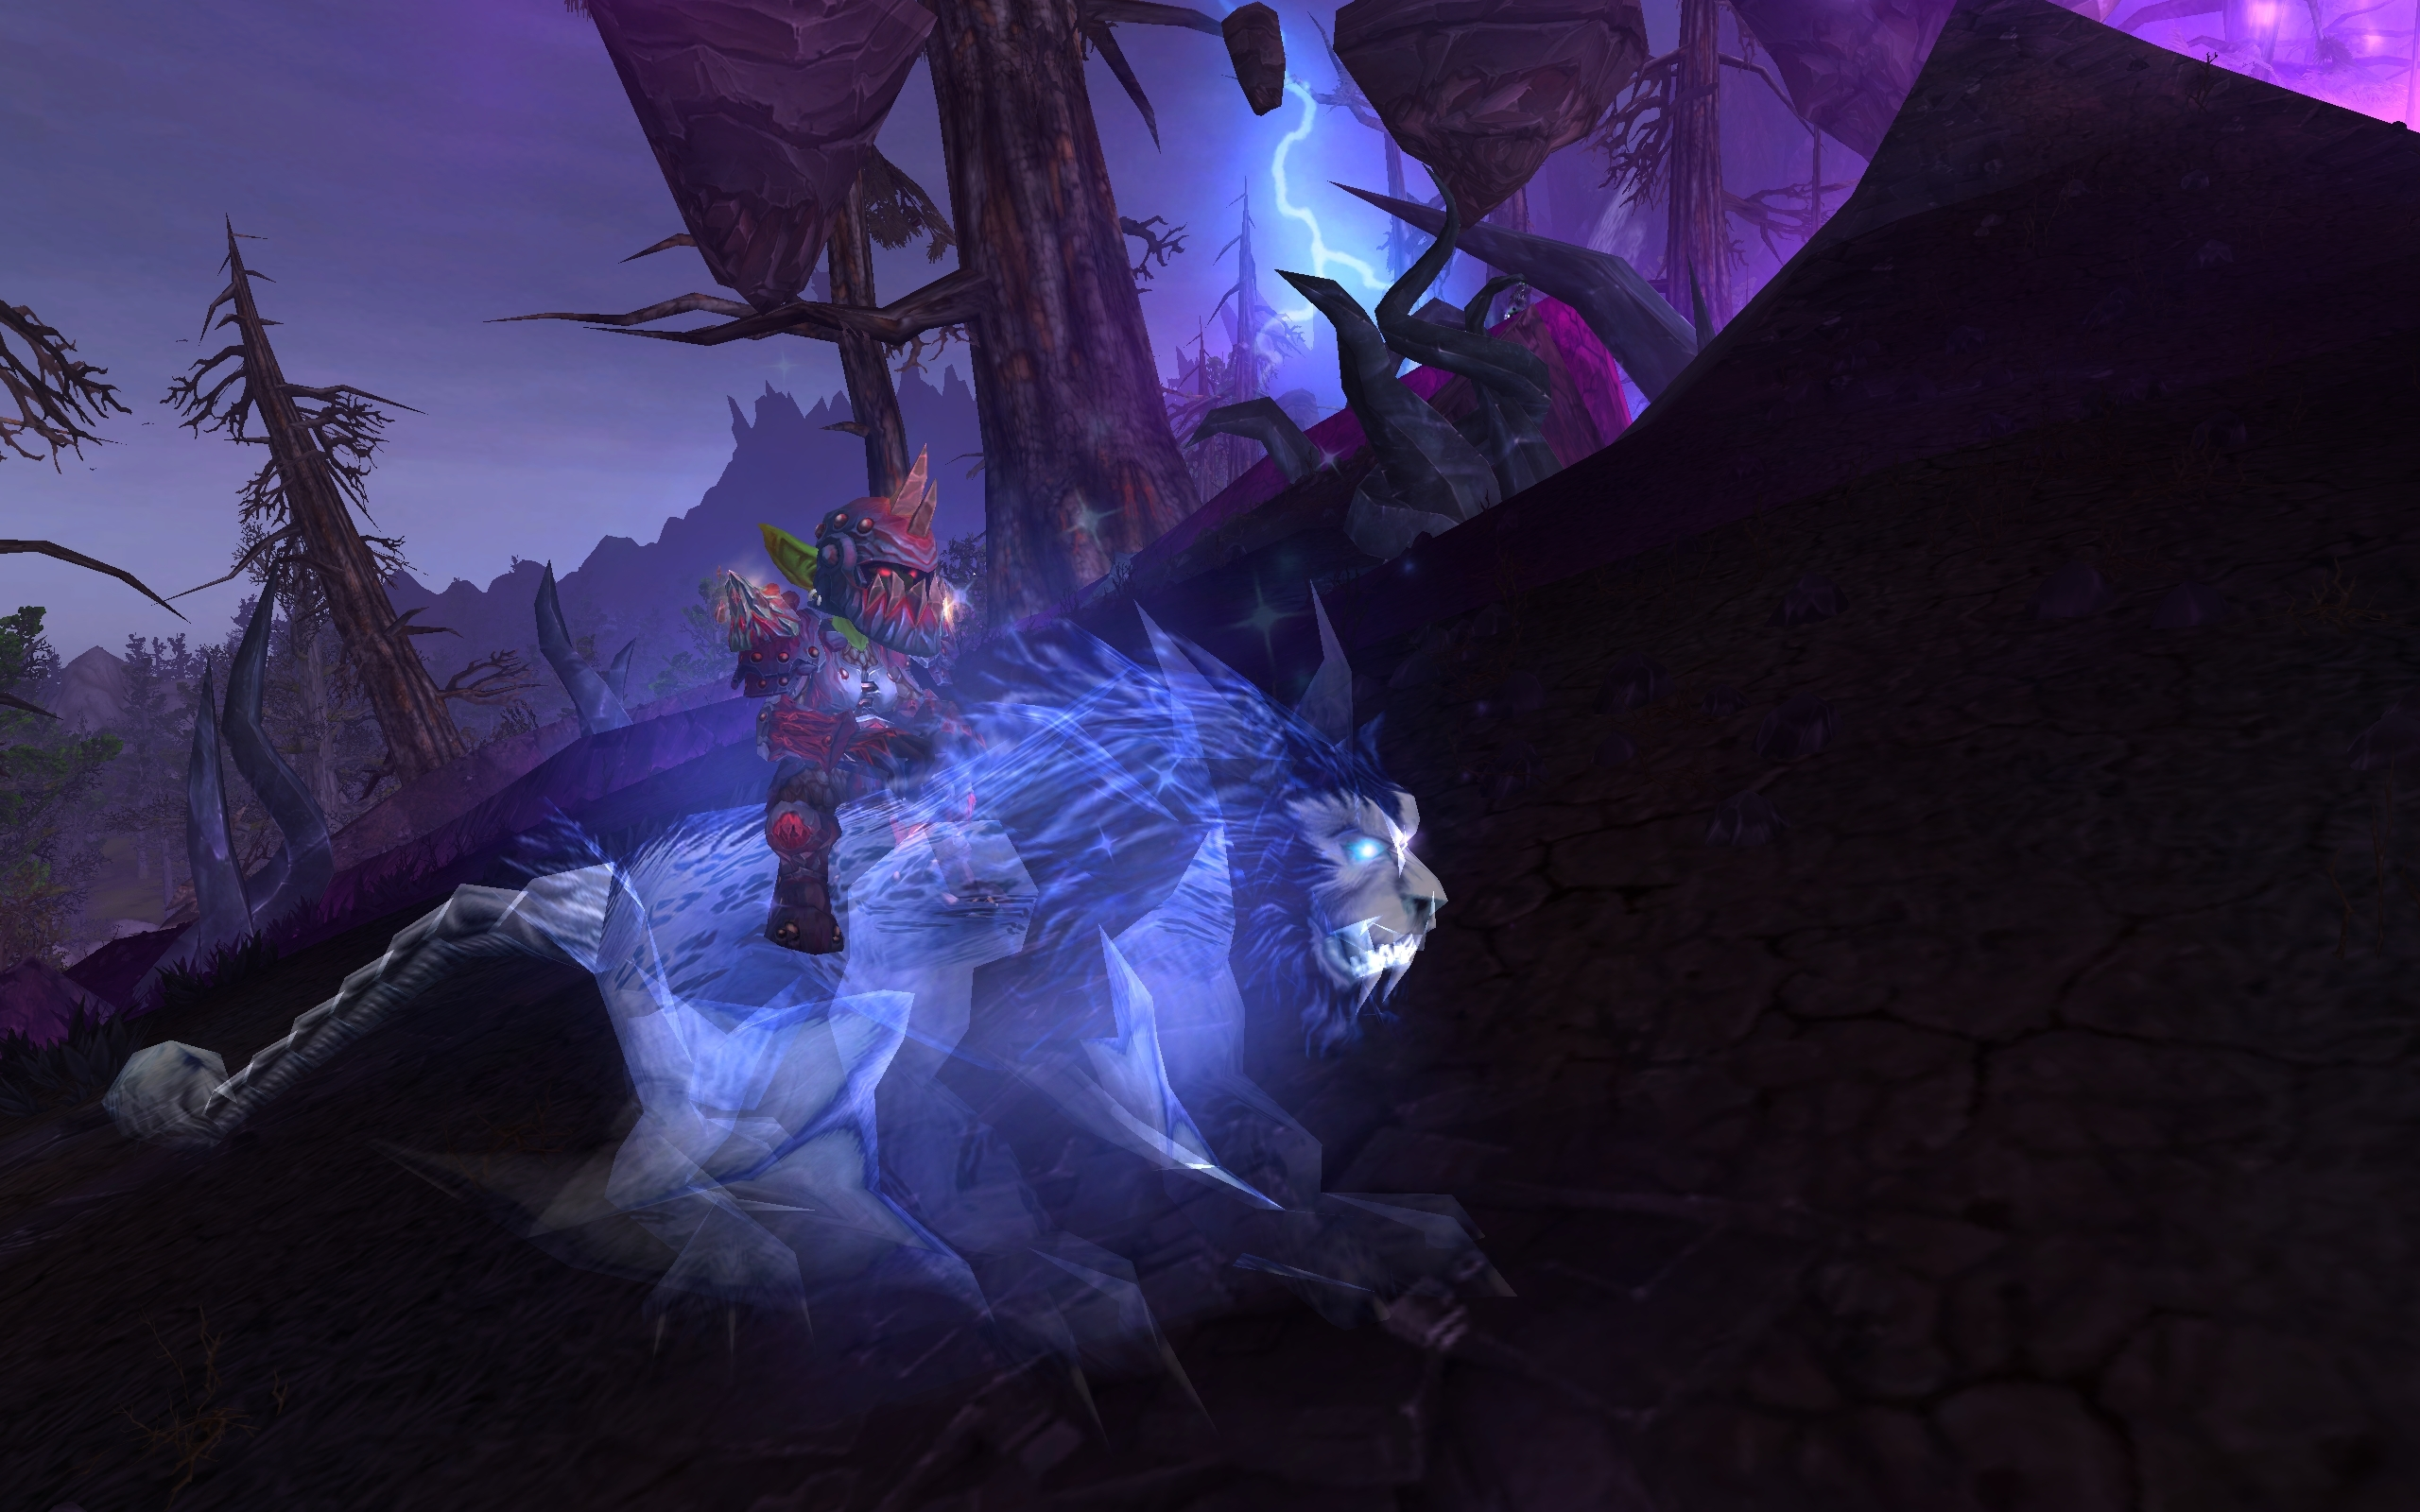 Patch 4.3 New spectral windrider and gryphon mounts.